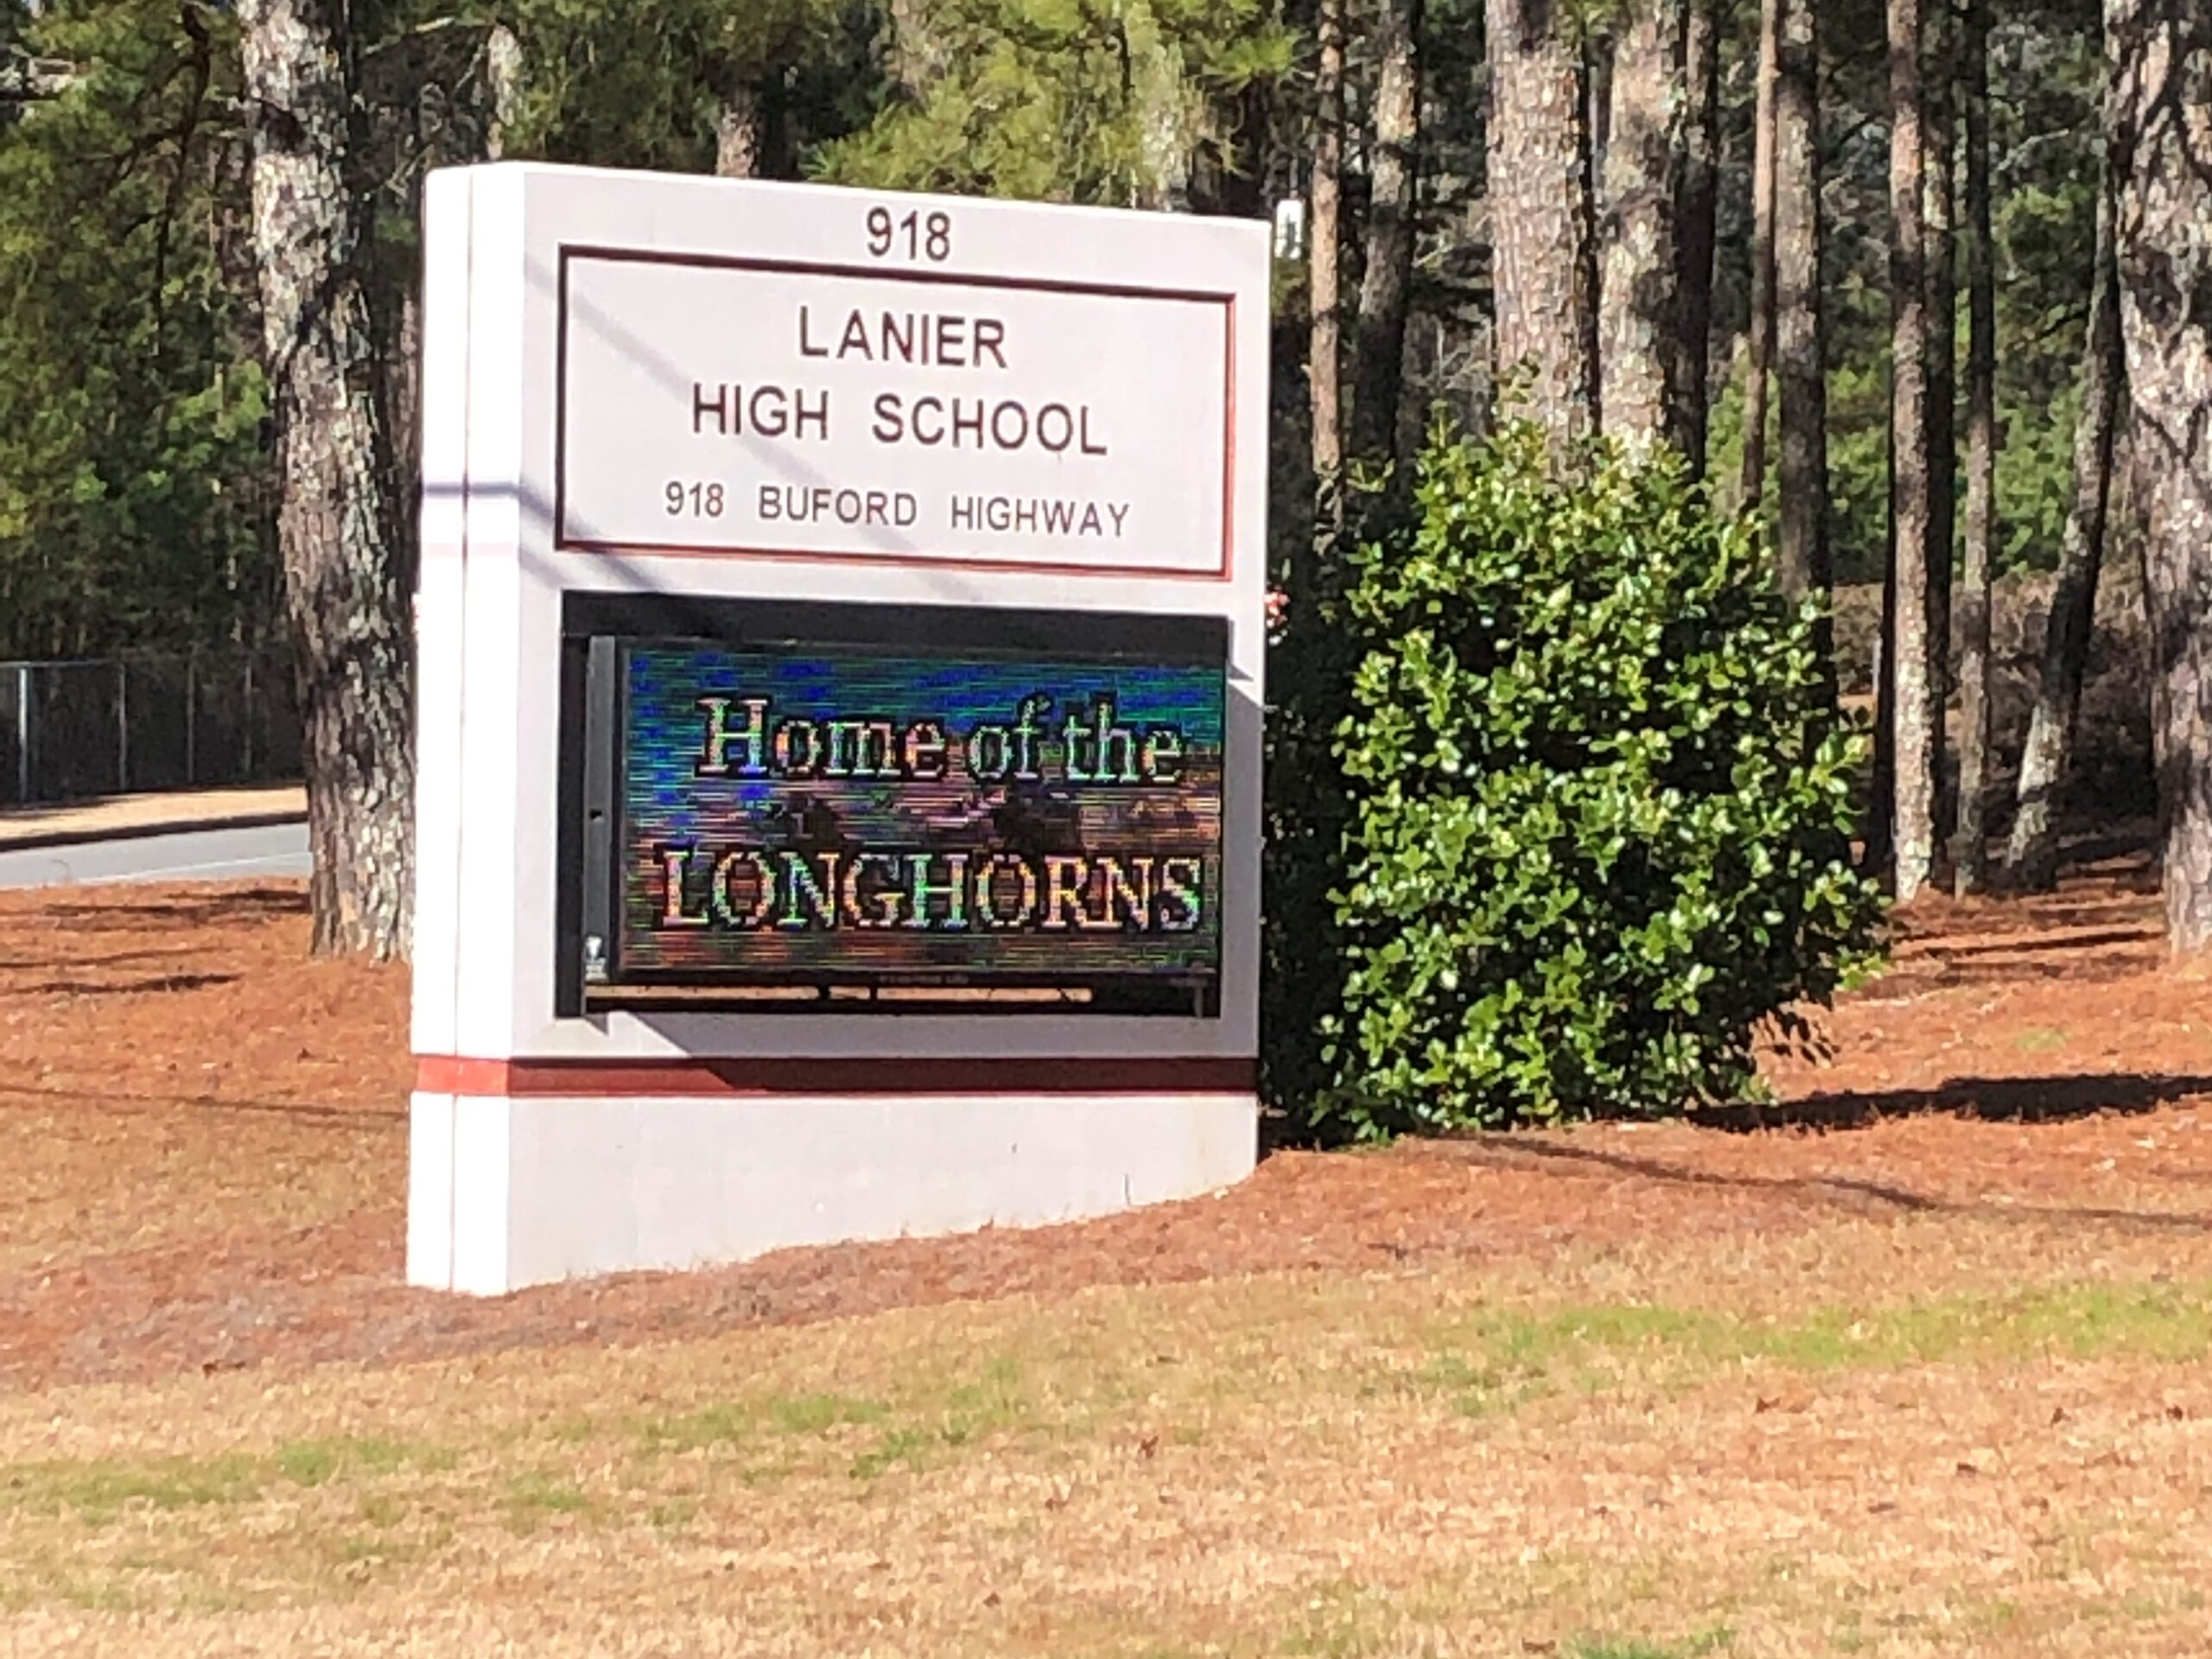 Lanier High School and Mantis EDU: Changing The Climate of STEM Education